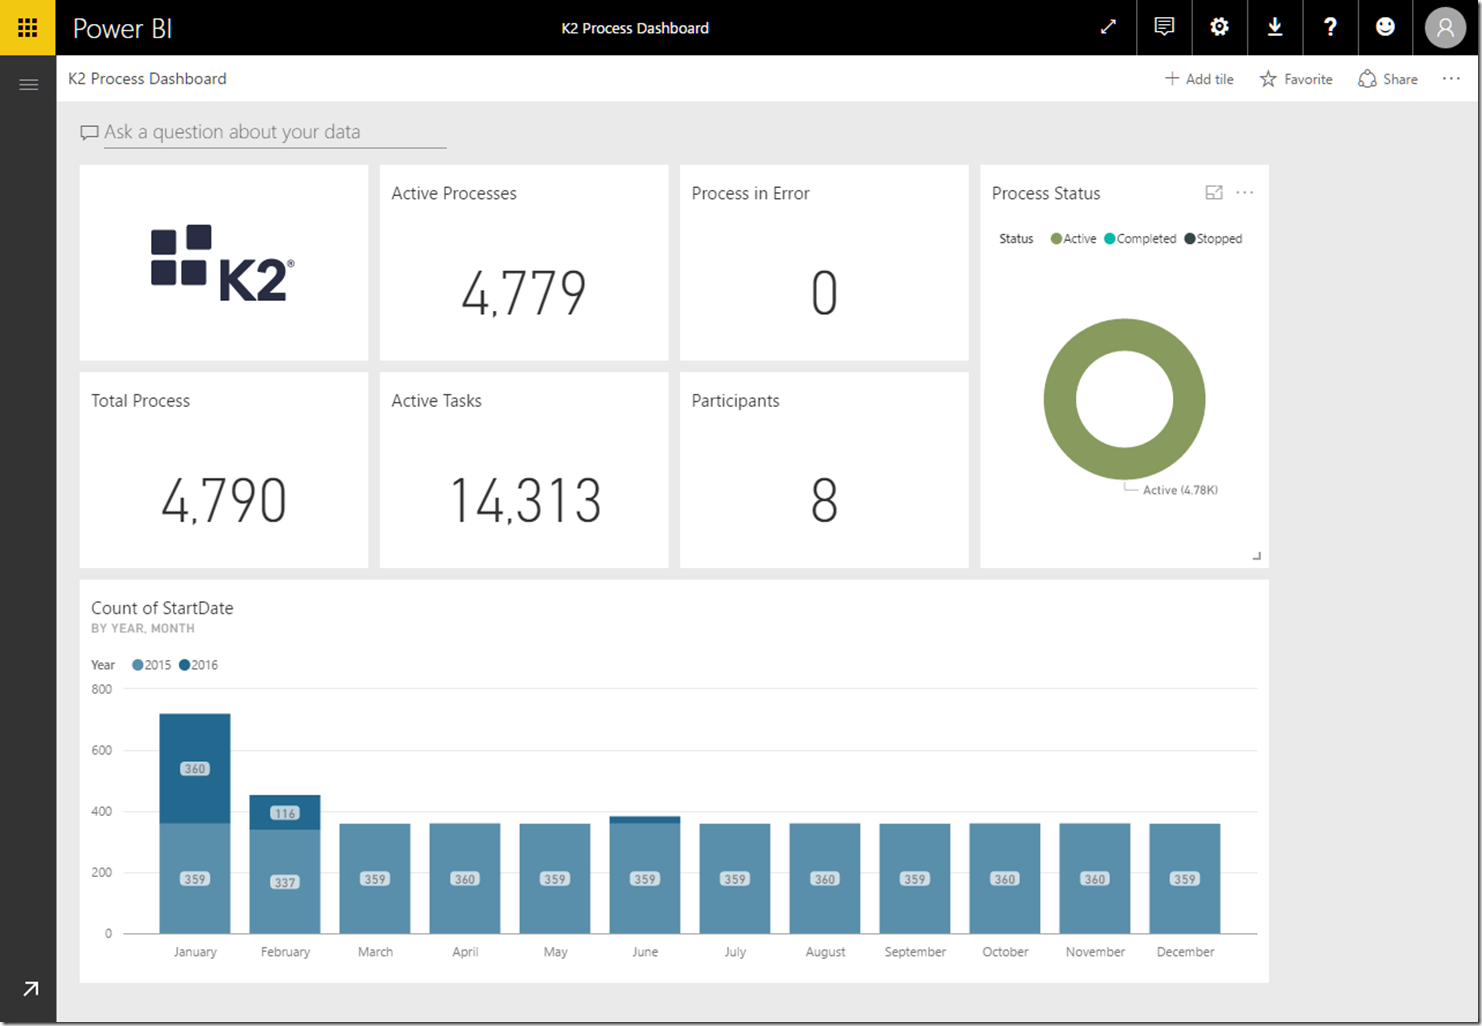 04d20823 094c 4f22 ae82 6d43b5fb212a Explore your K2 Process Analytics Data with Power BI